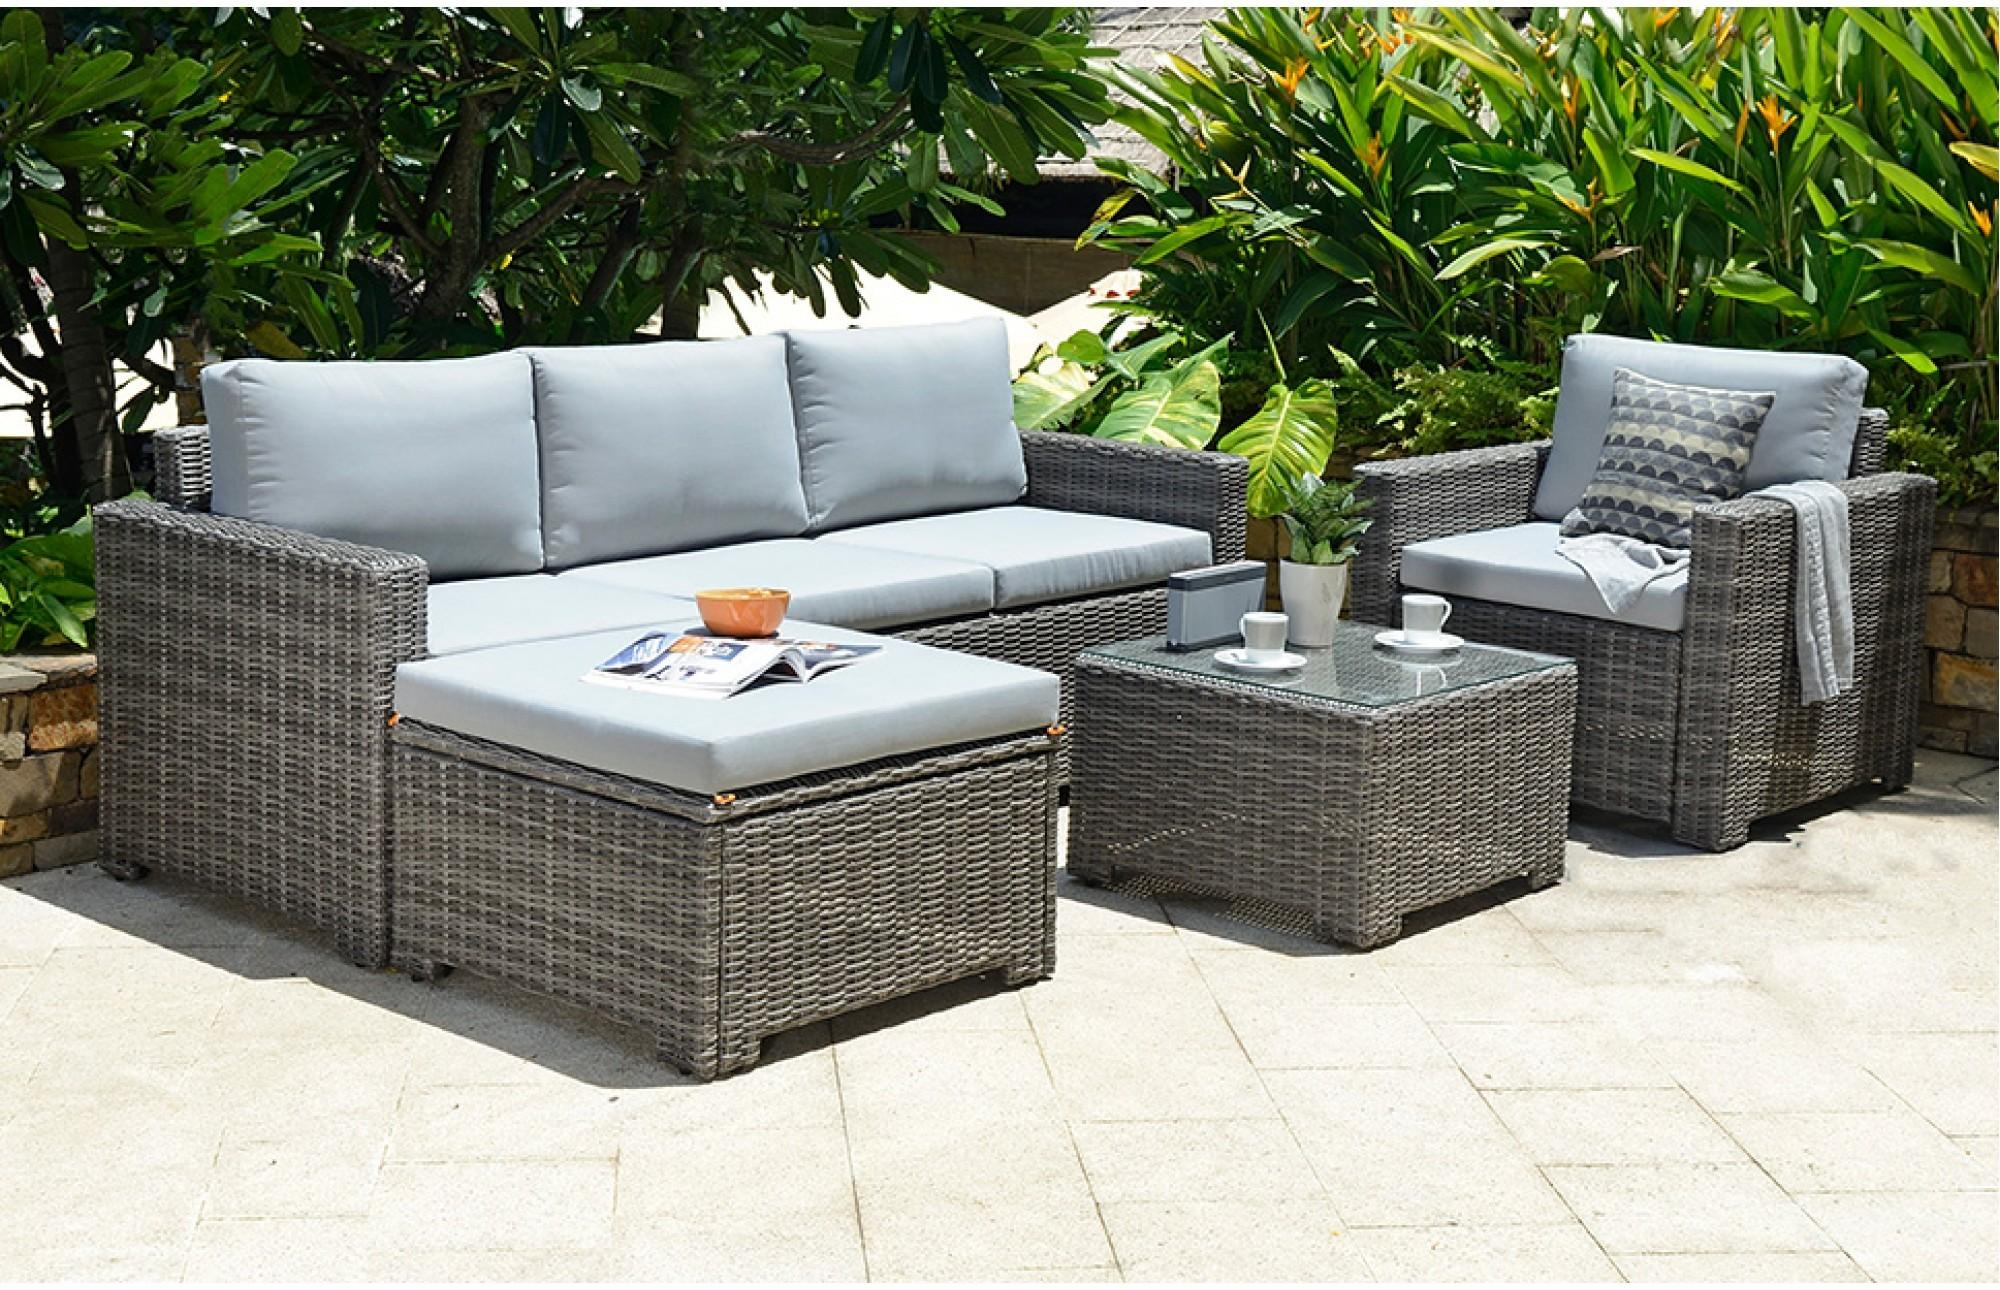 Outdoor Patio Wicker Furniture Pool Lounge All Weather